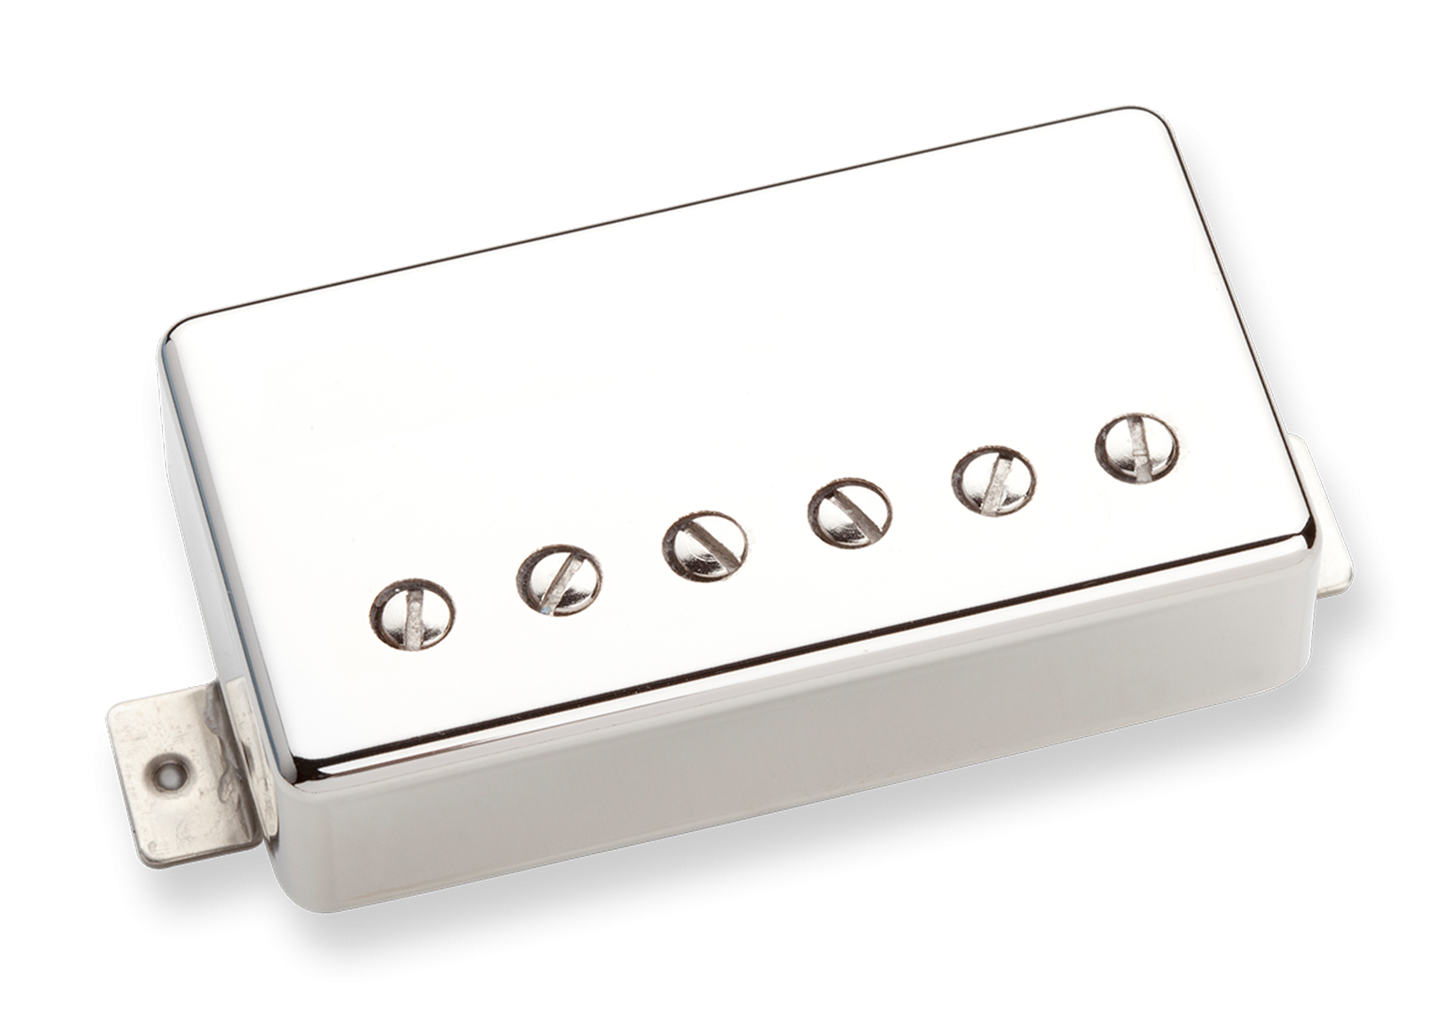 Seymour Duncan Seth Lover Humbucker - SH-55B Bridge Nickel 4 Conductor